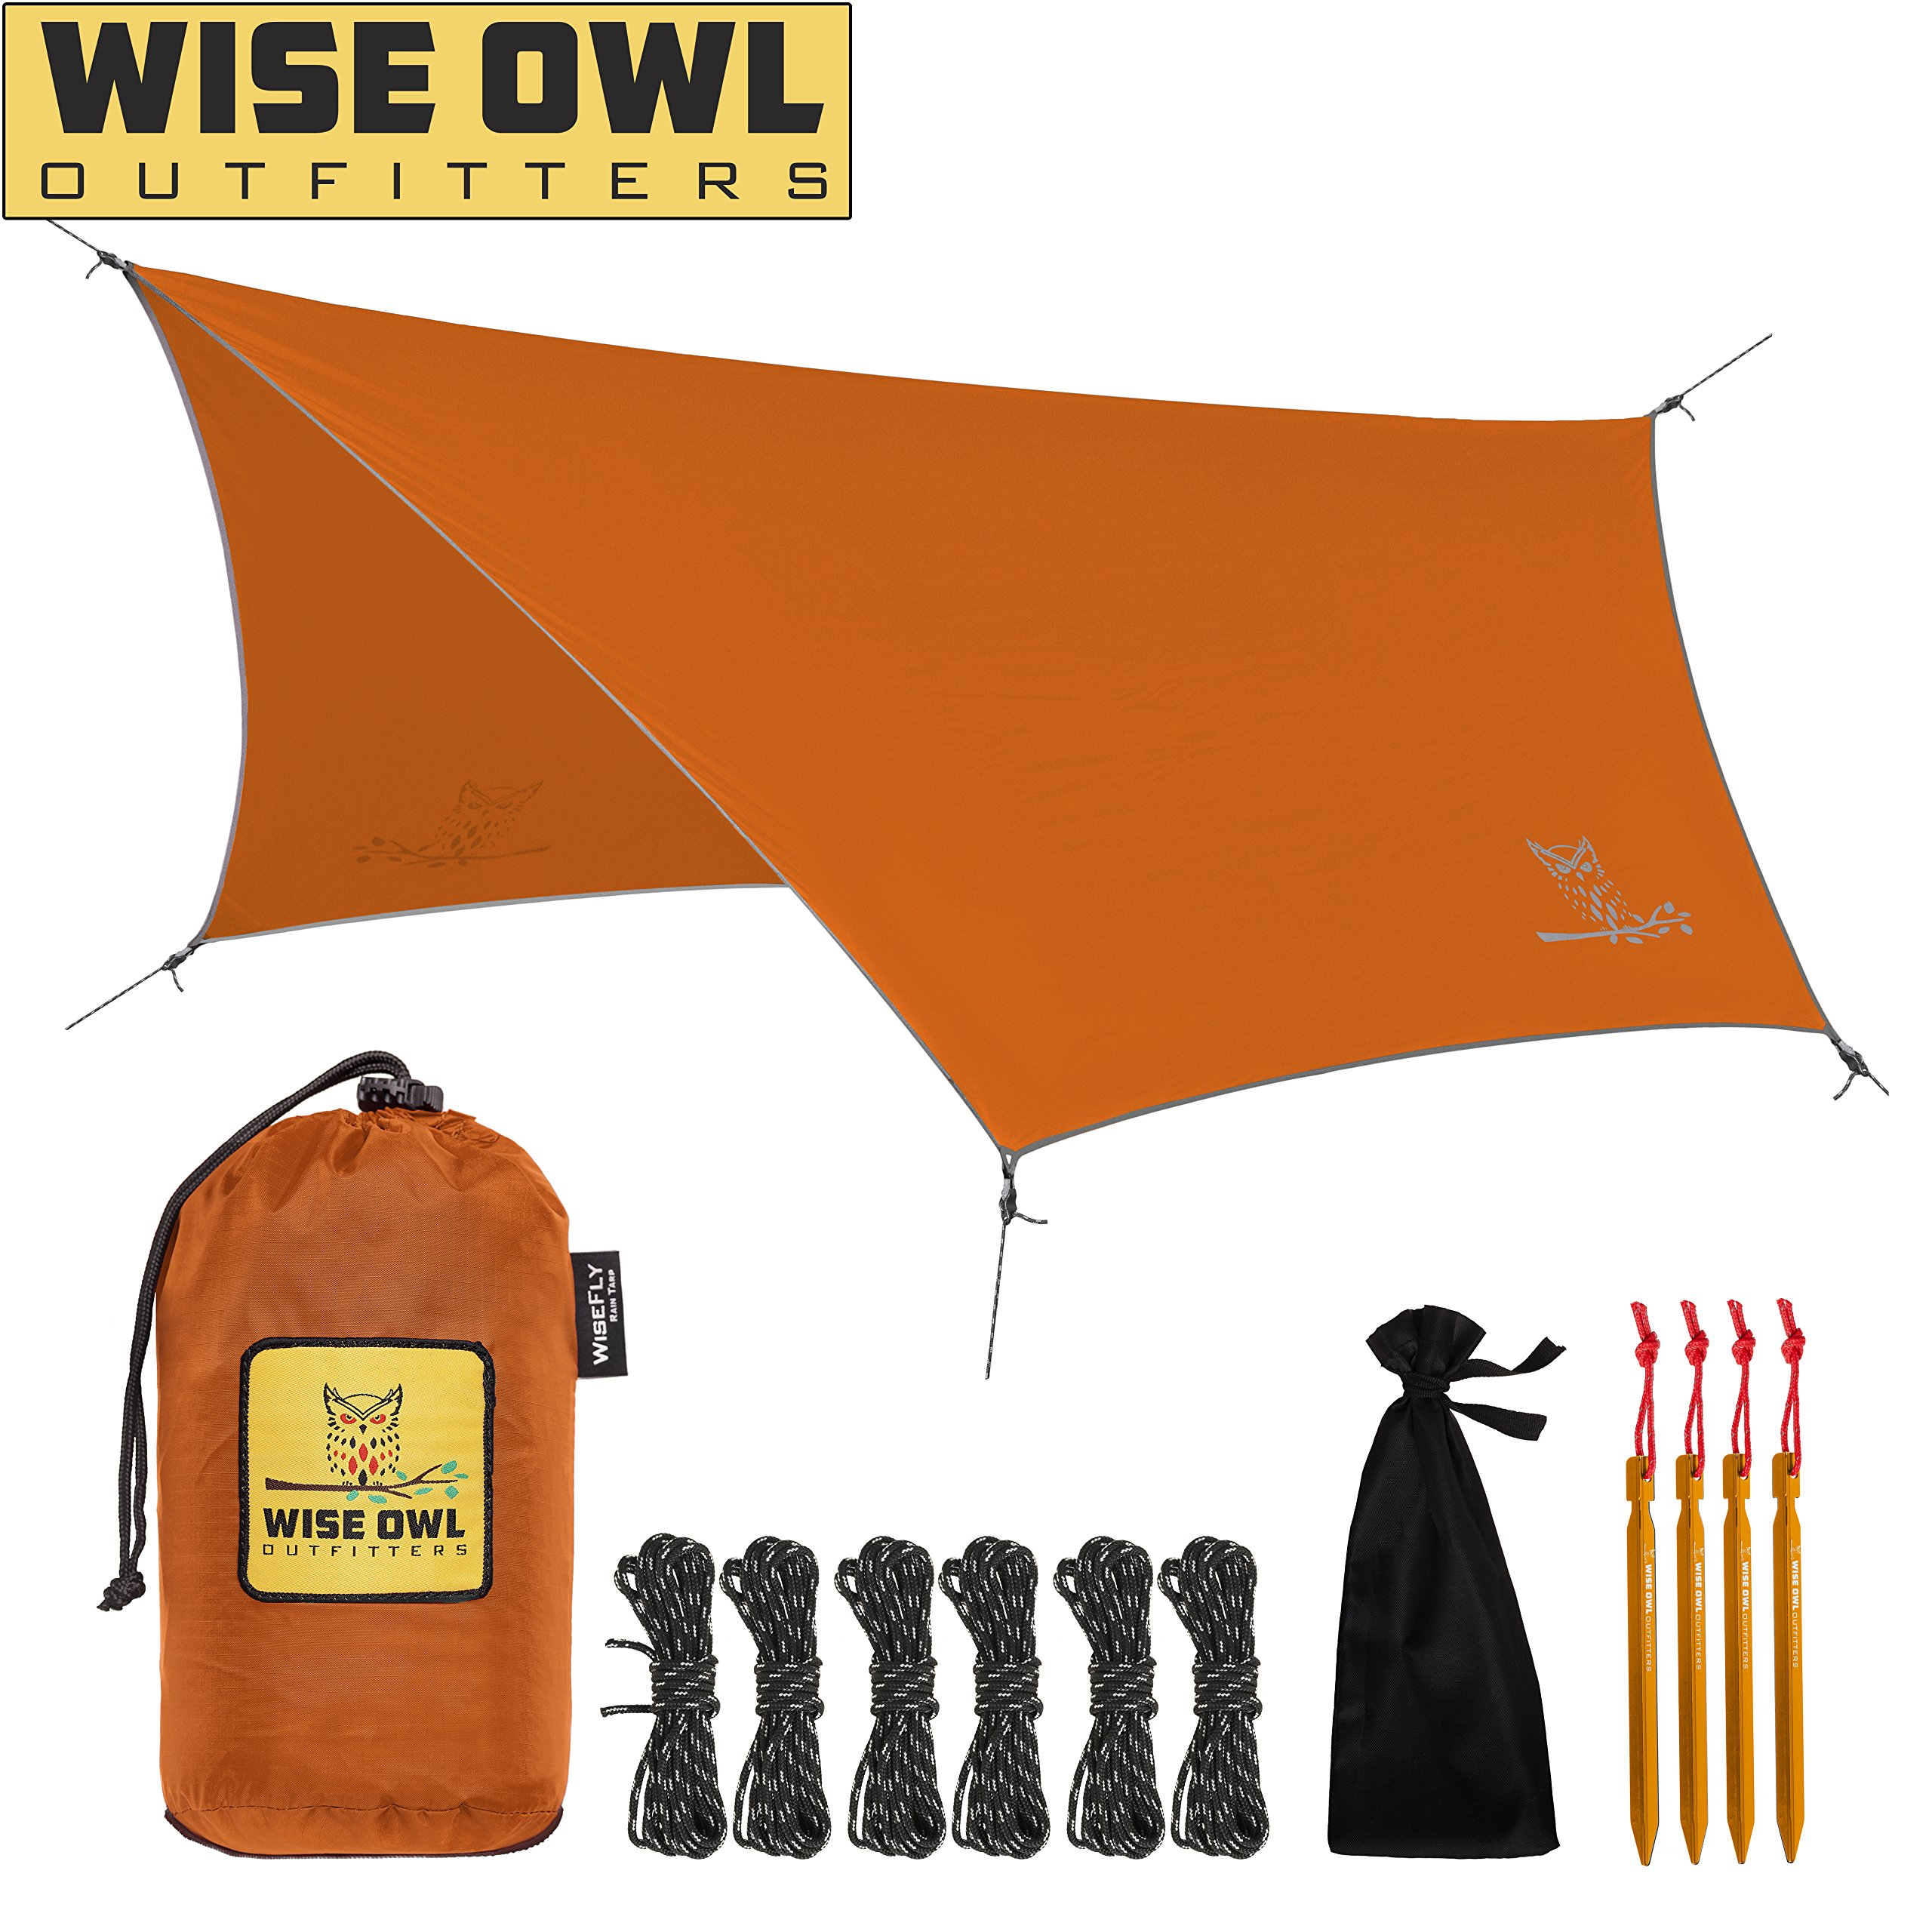 Wise Owl Outfitters Rain Fly Tarp - The WiseFly Premium 11 x 9 ft Waterproof Camping Shelter Canopy - Lightweight Easy Setup for Hammock or Tent Camp Gear - Orange by Wise Owl Outfitters